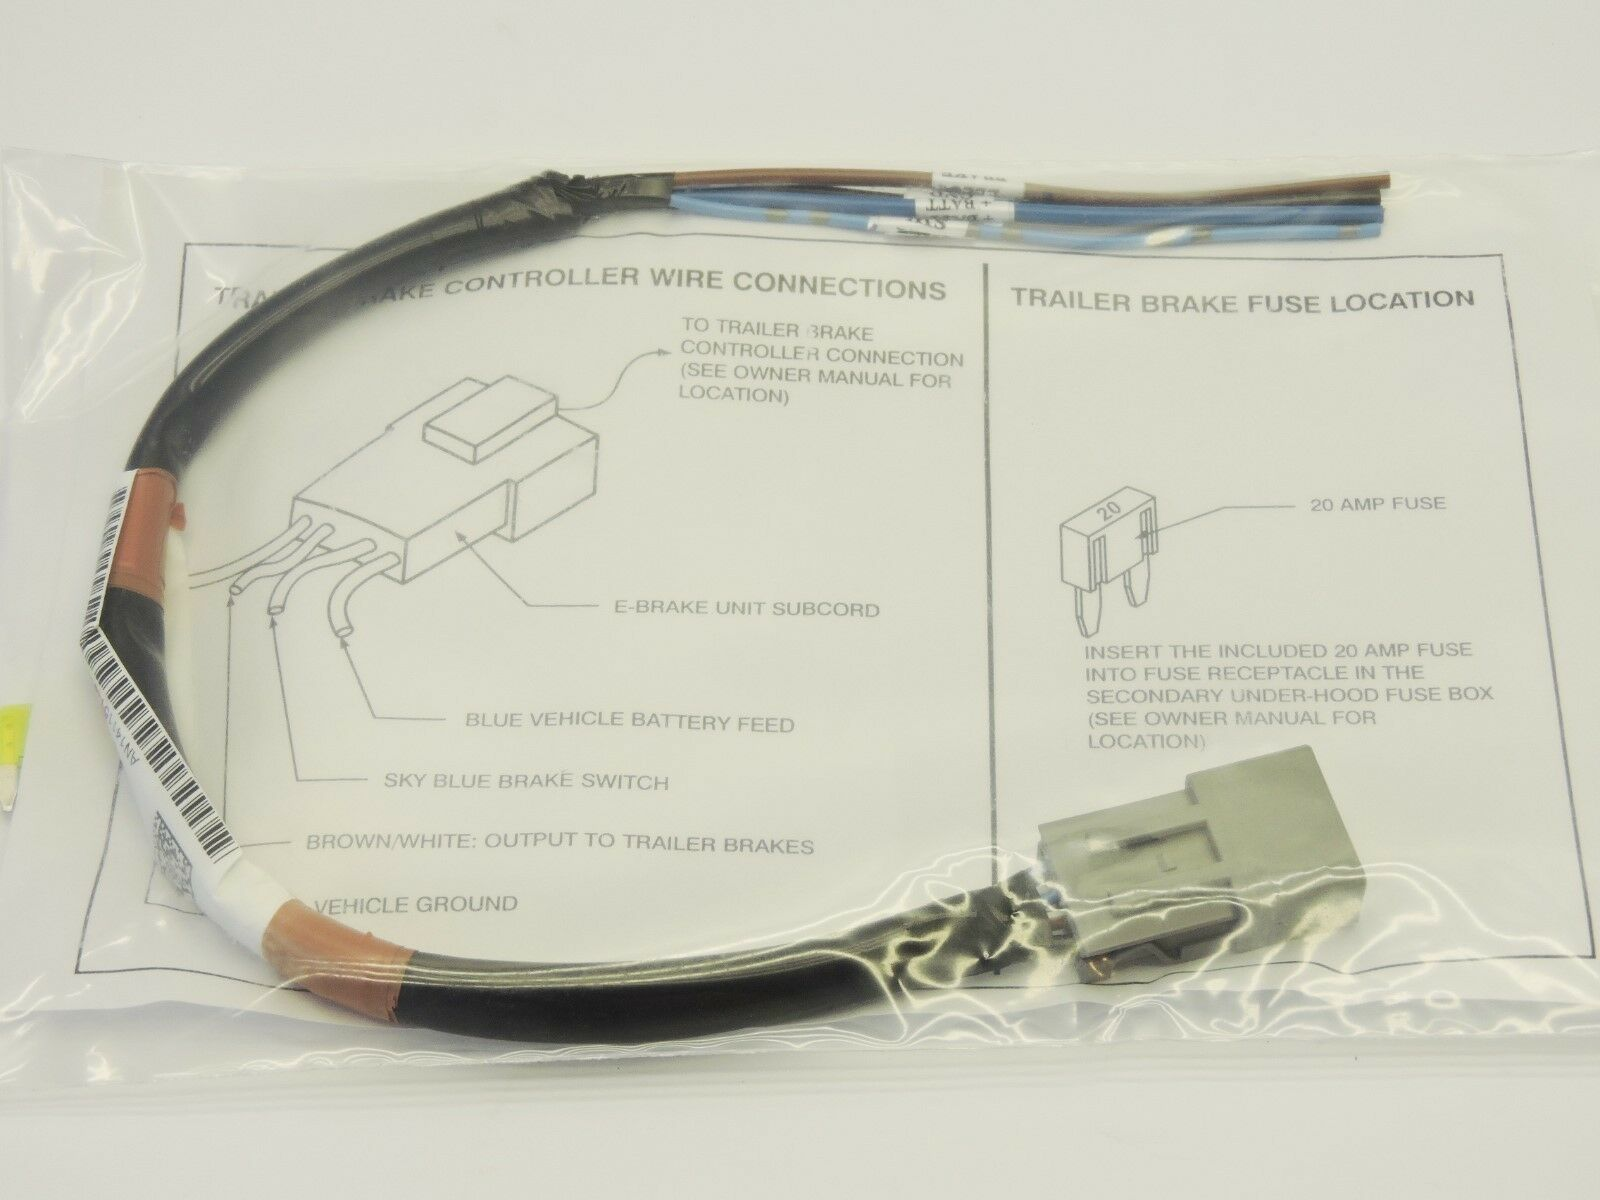 Honda Pilot Trailer Brake Controller Wire Connections 32111 Sza A002 Hayes Wiring Diagram A001 01 Ebay